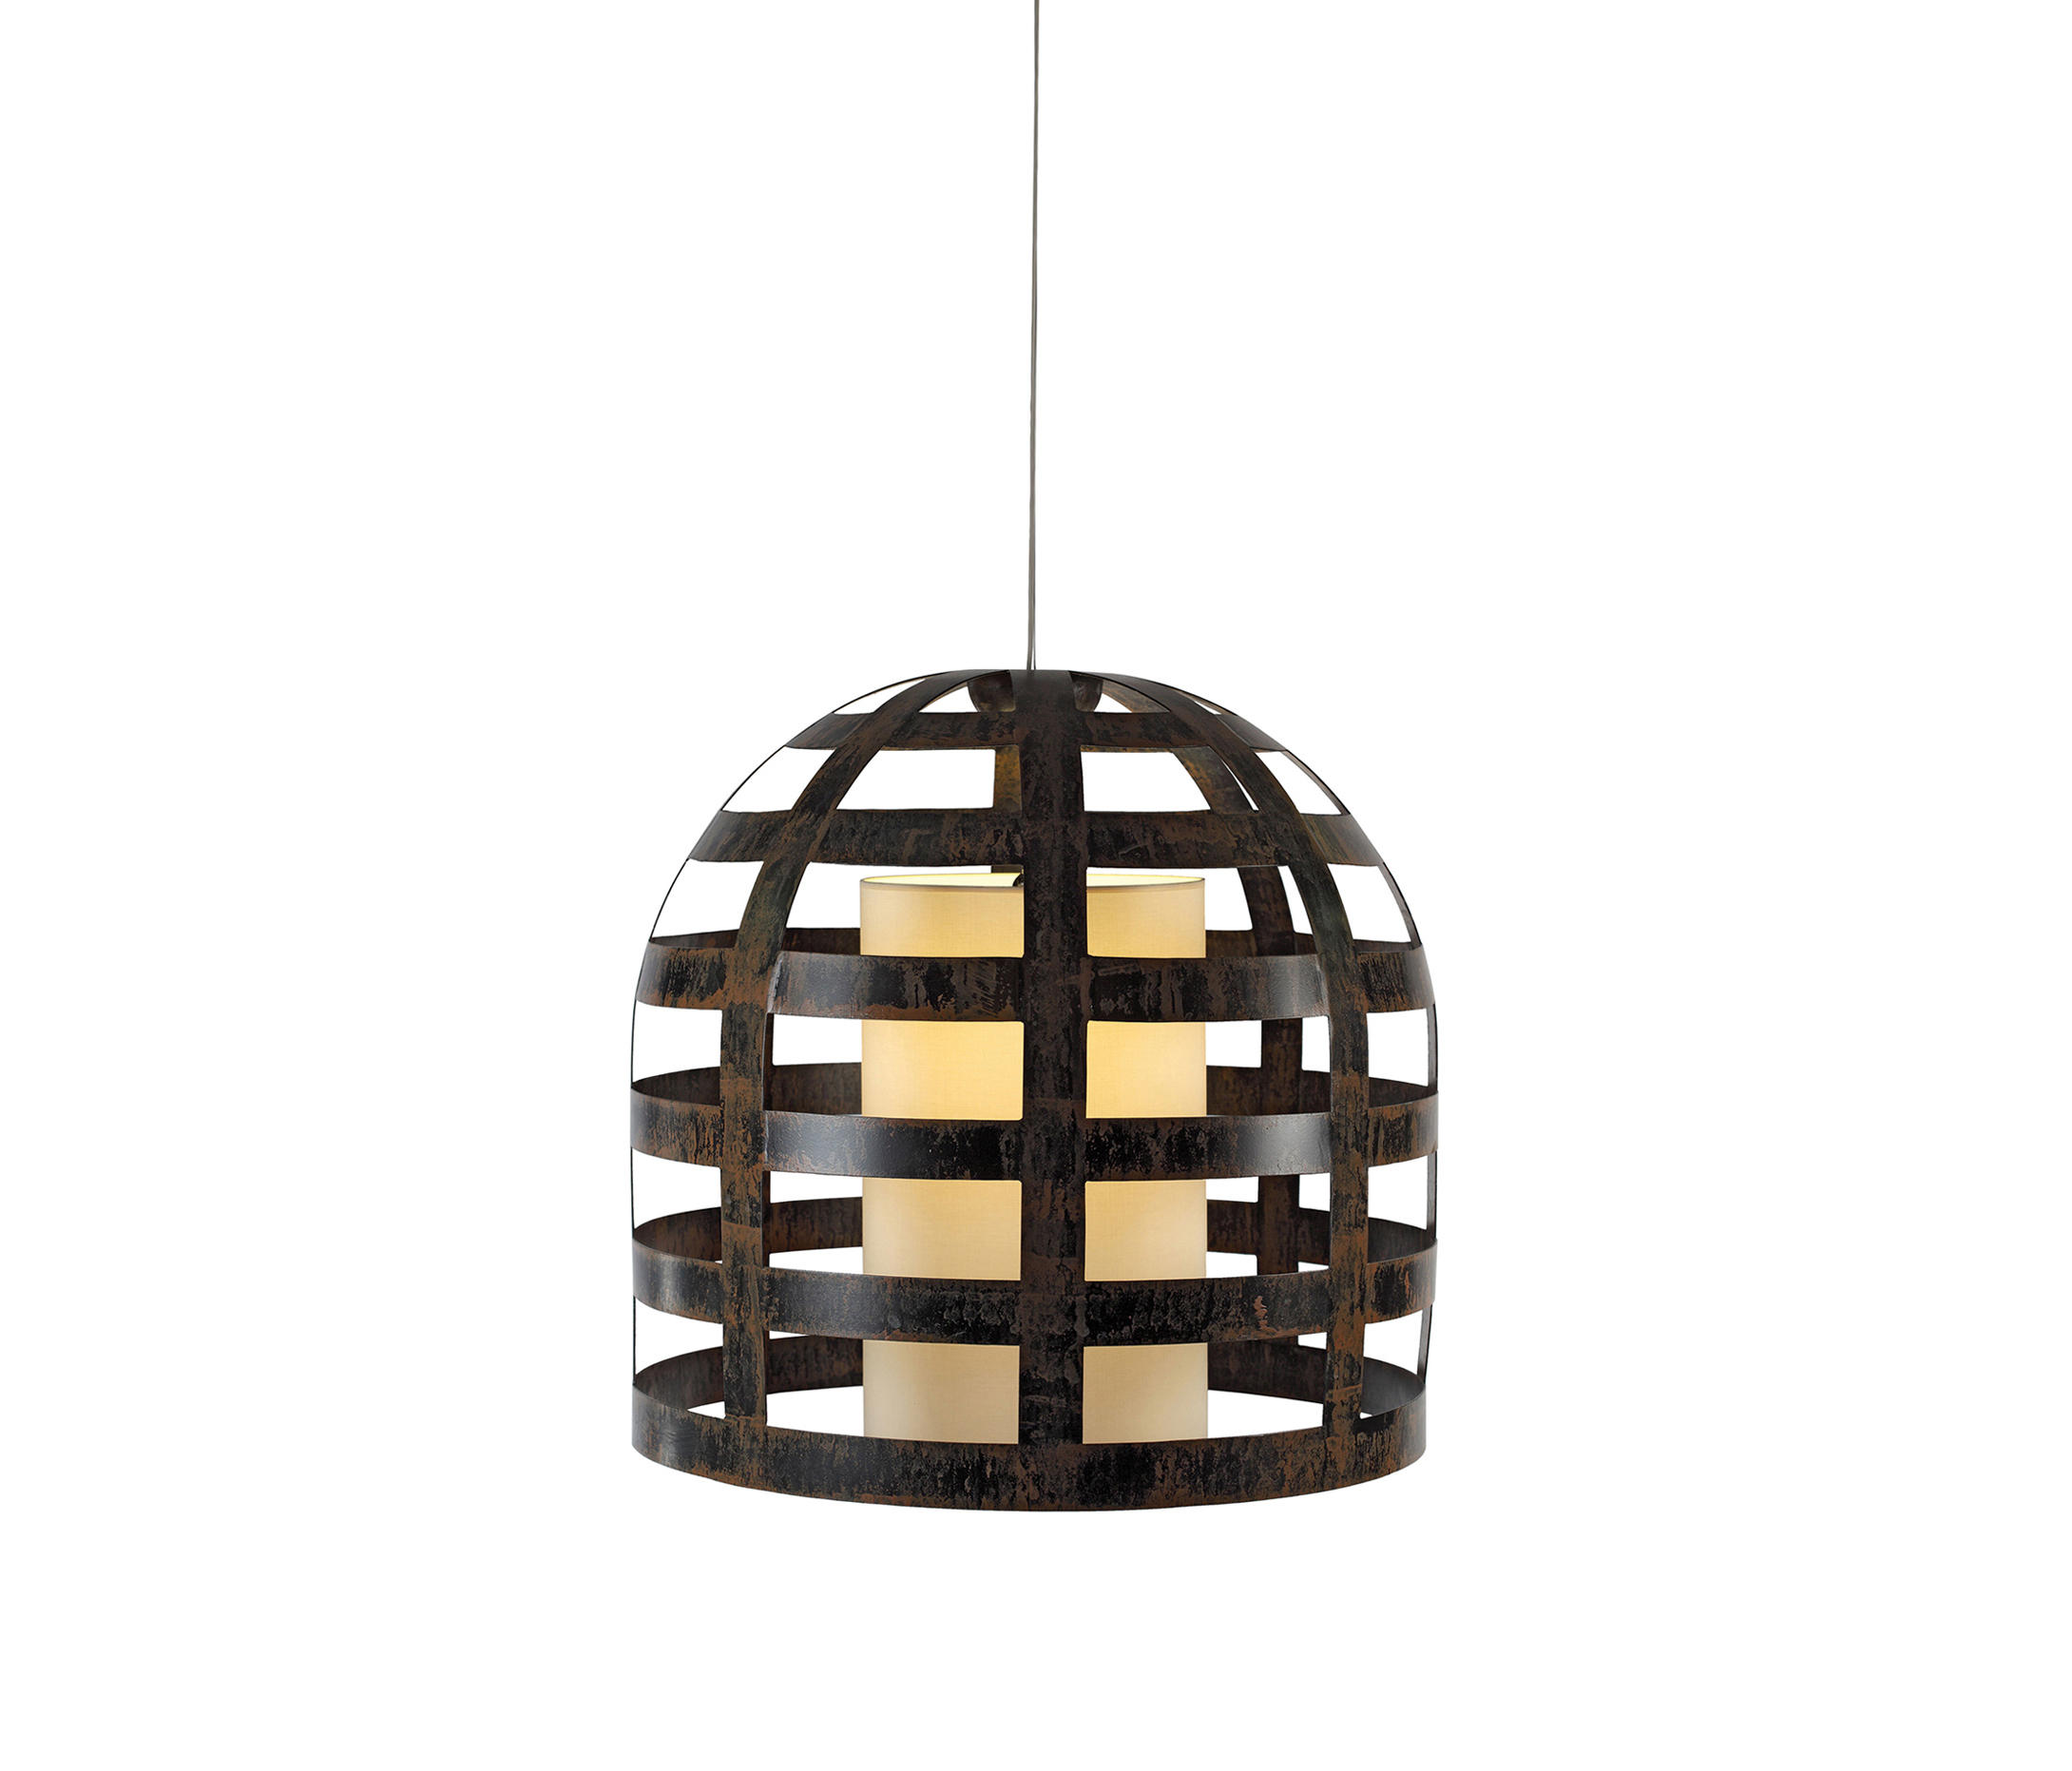 Cage suspension lamp general lighting from mambo unlimited ideas architonic - Suspension cage oiseau ...